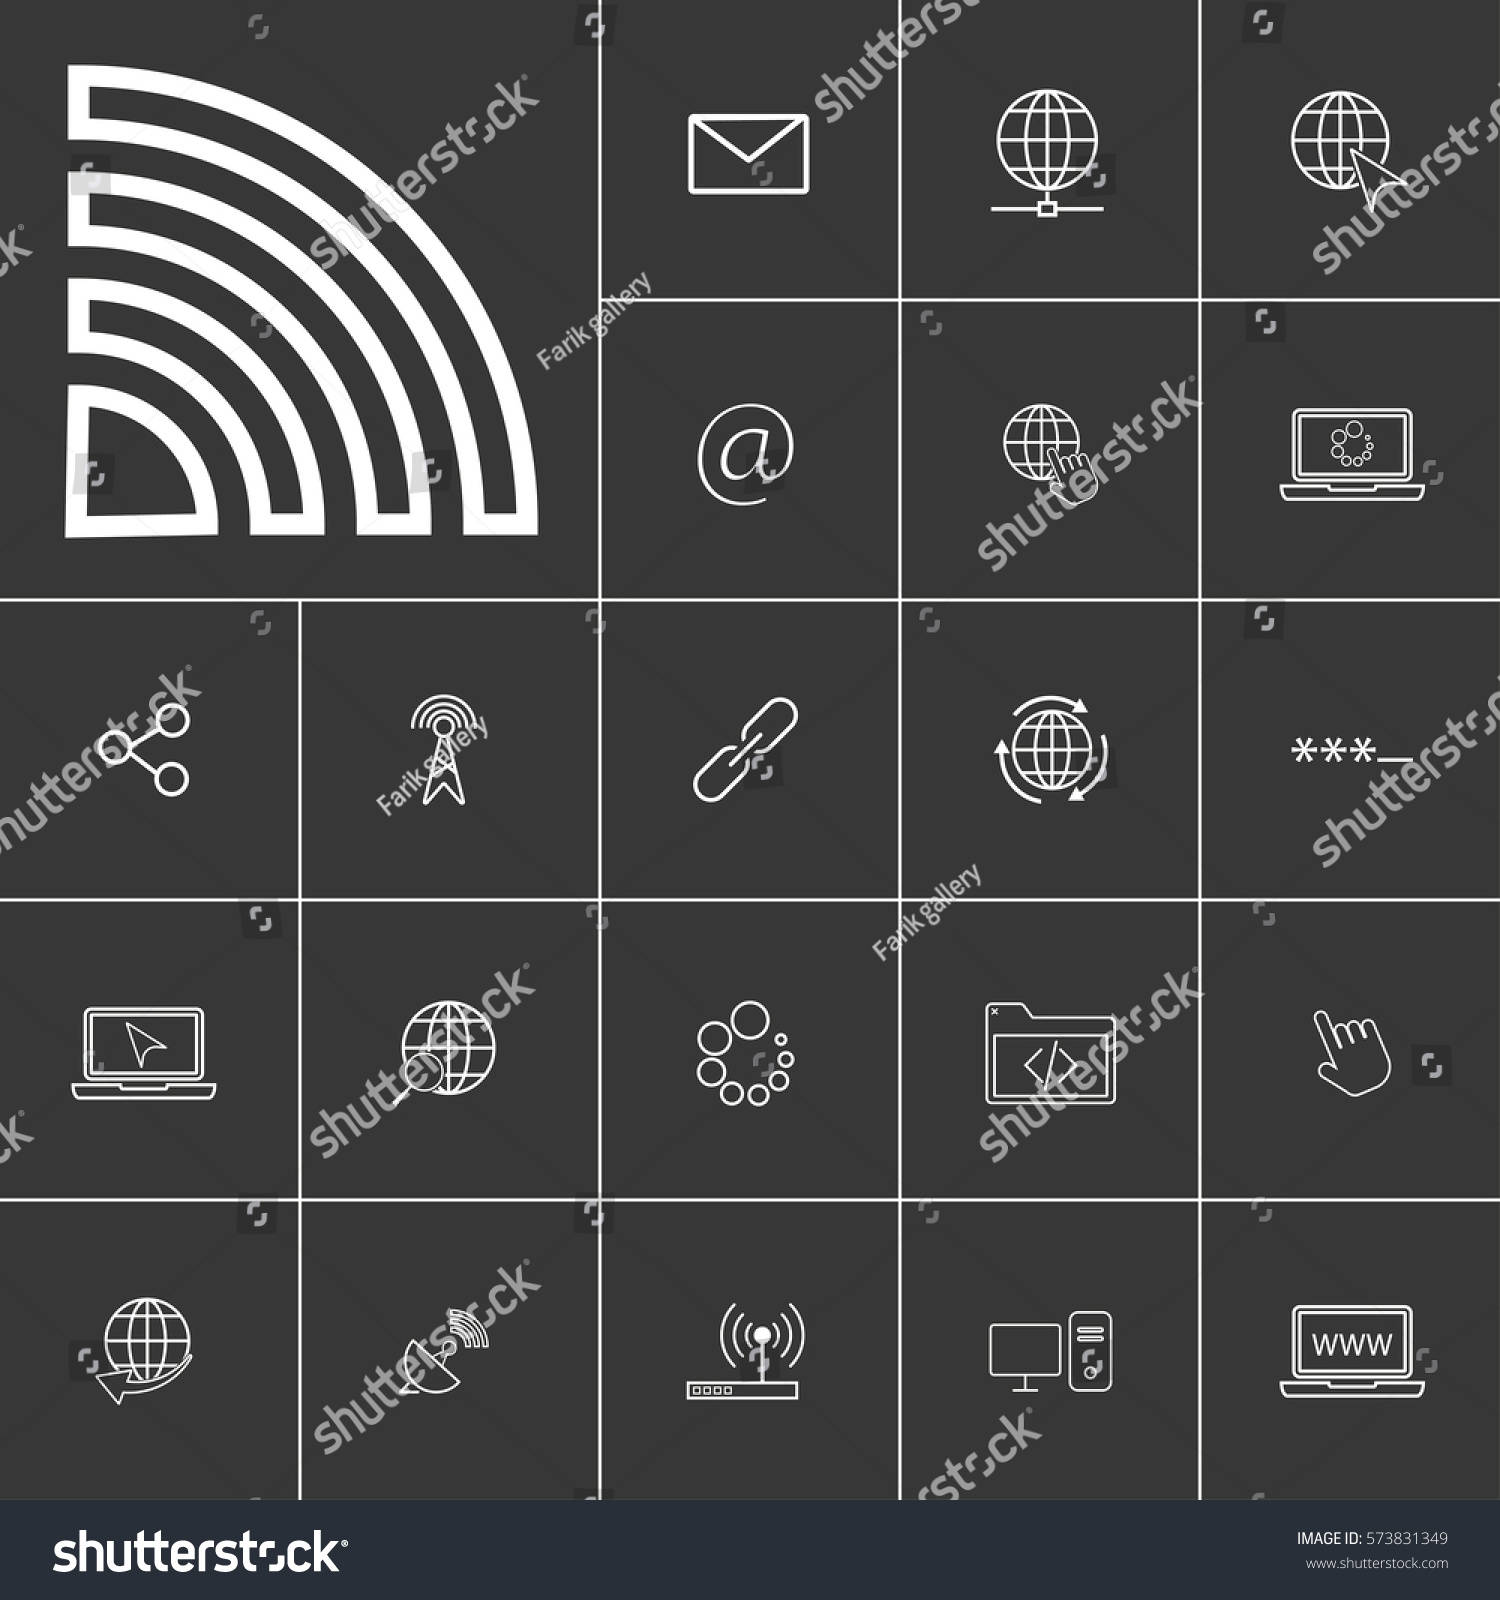 Wifi Linear Internet Icons Set Universal Stock Vector 573831349